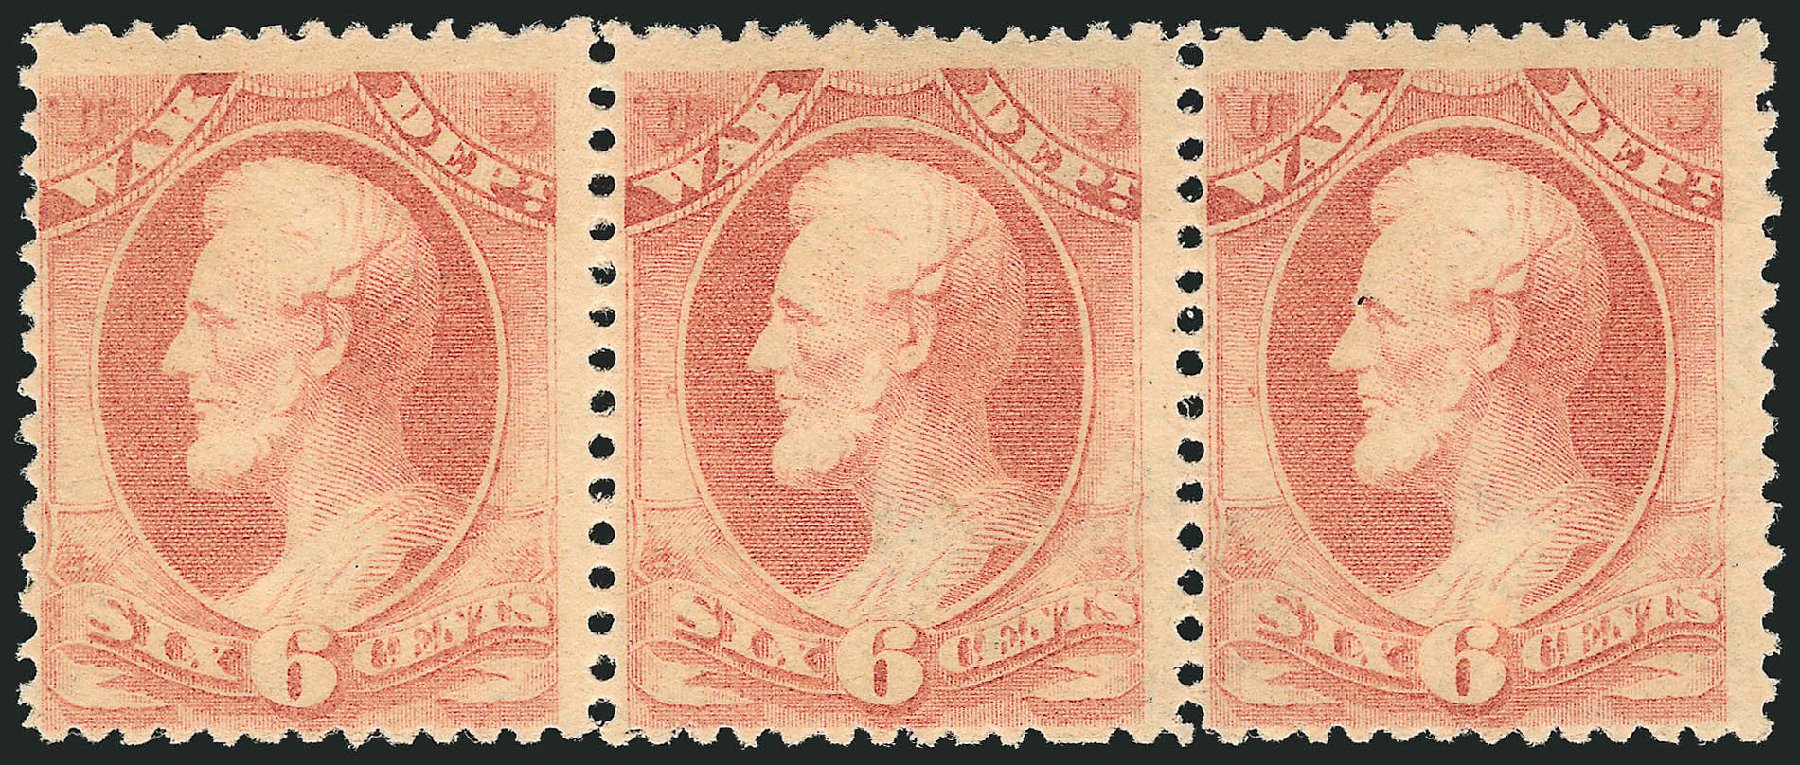 US Stamp Values Scott # O86 - 1873 6c War Official. Robert Siegel Auction Galleries, Dec 2014, Sale 1090, Lot 1675